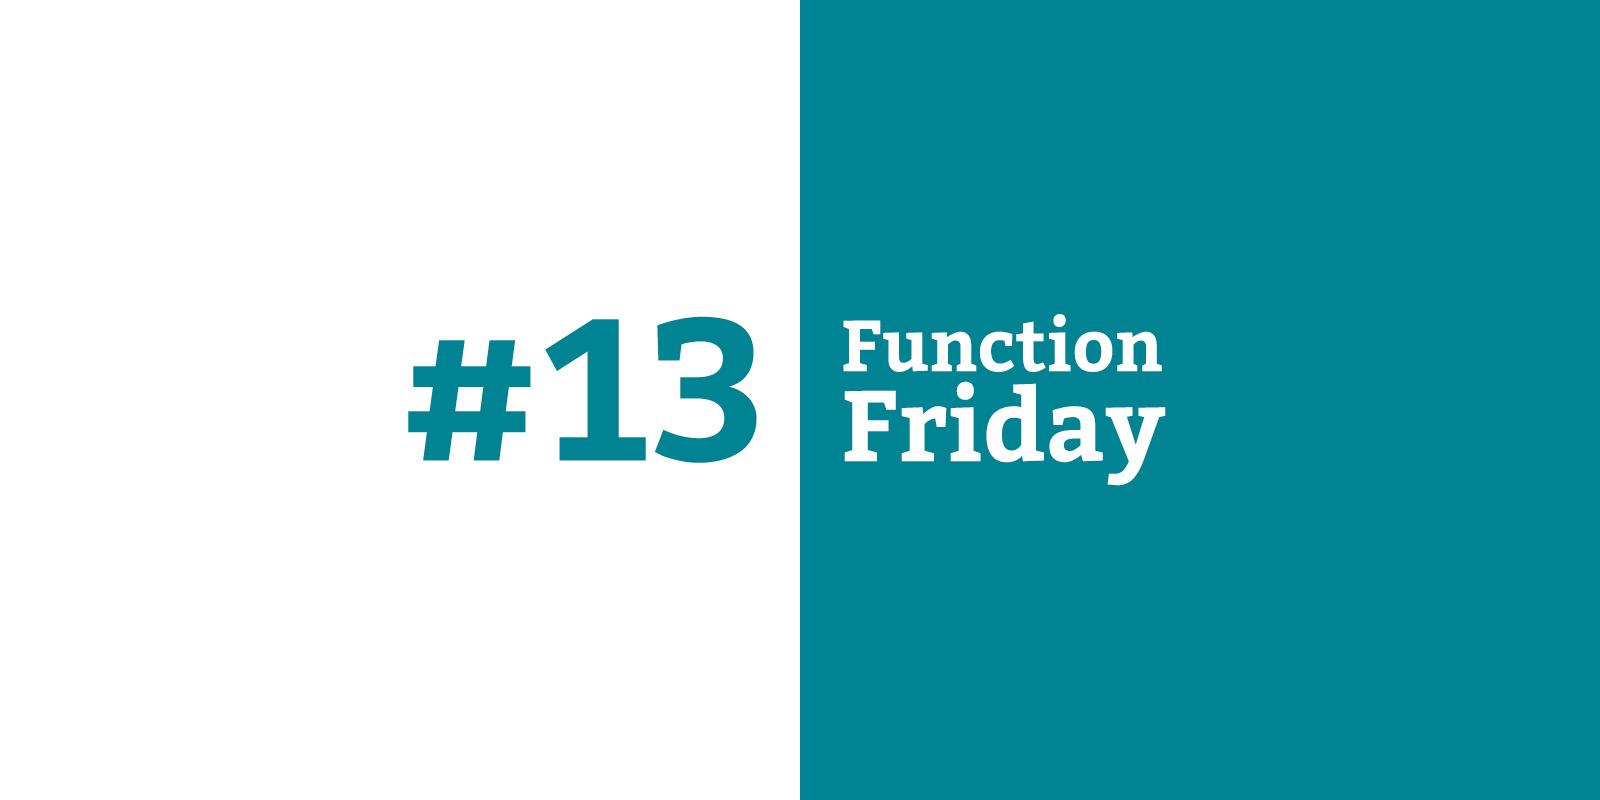 Function Friday #13